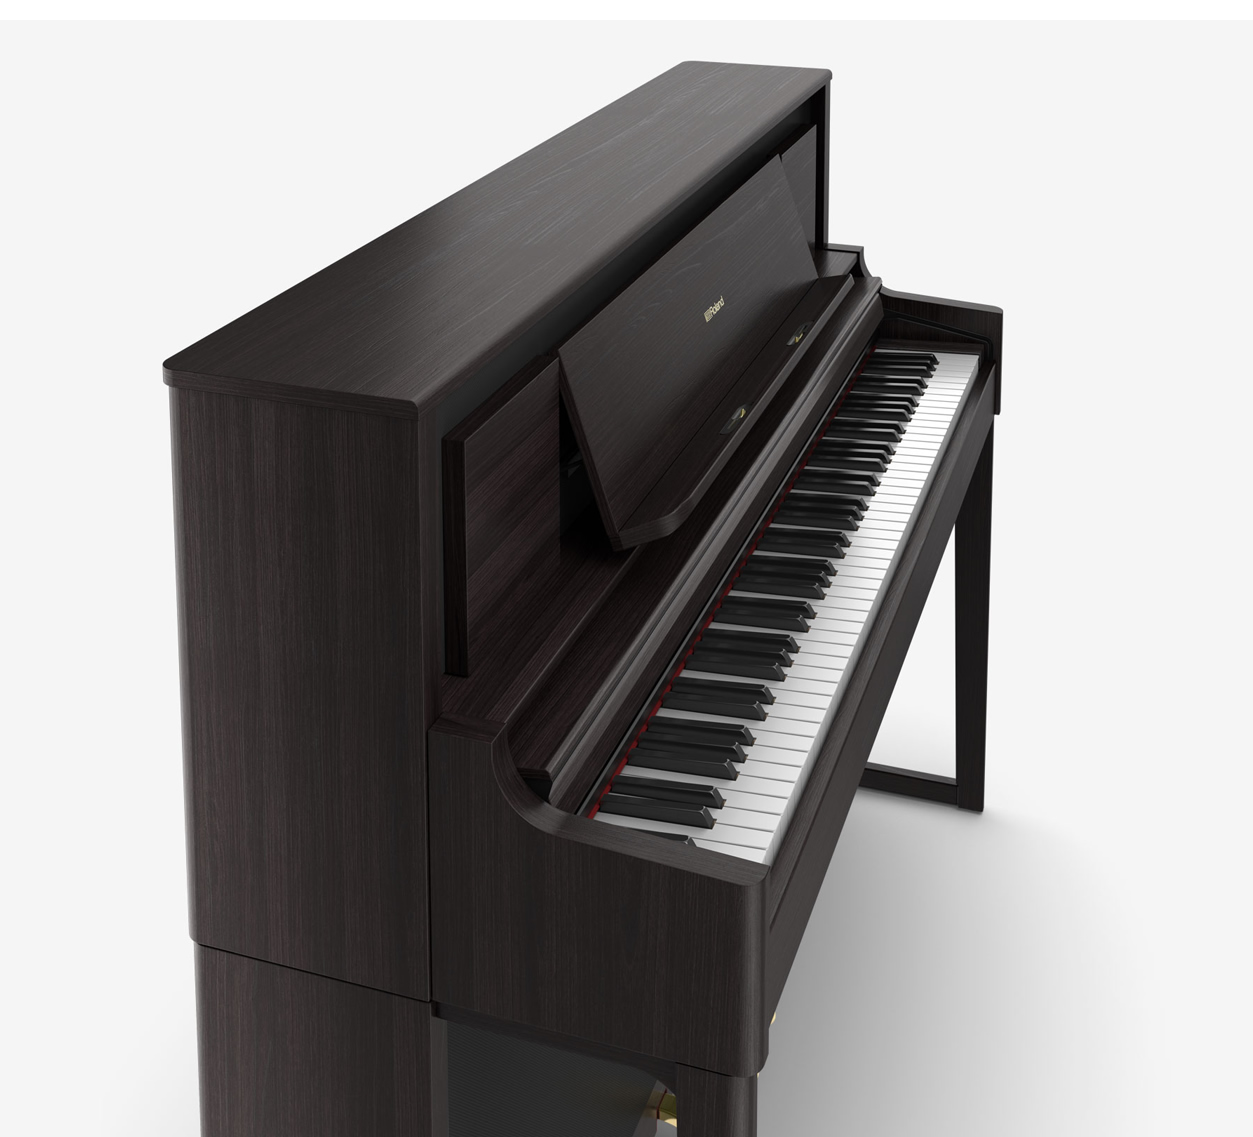 Main Gallery Image: Roland LX706 digital piano.